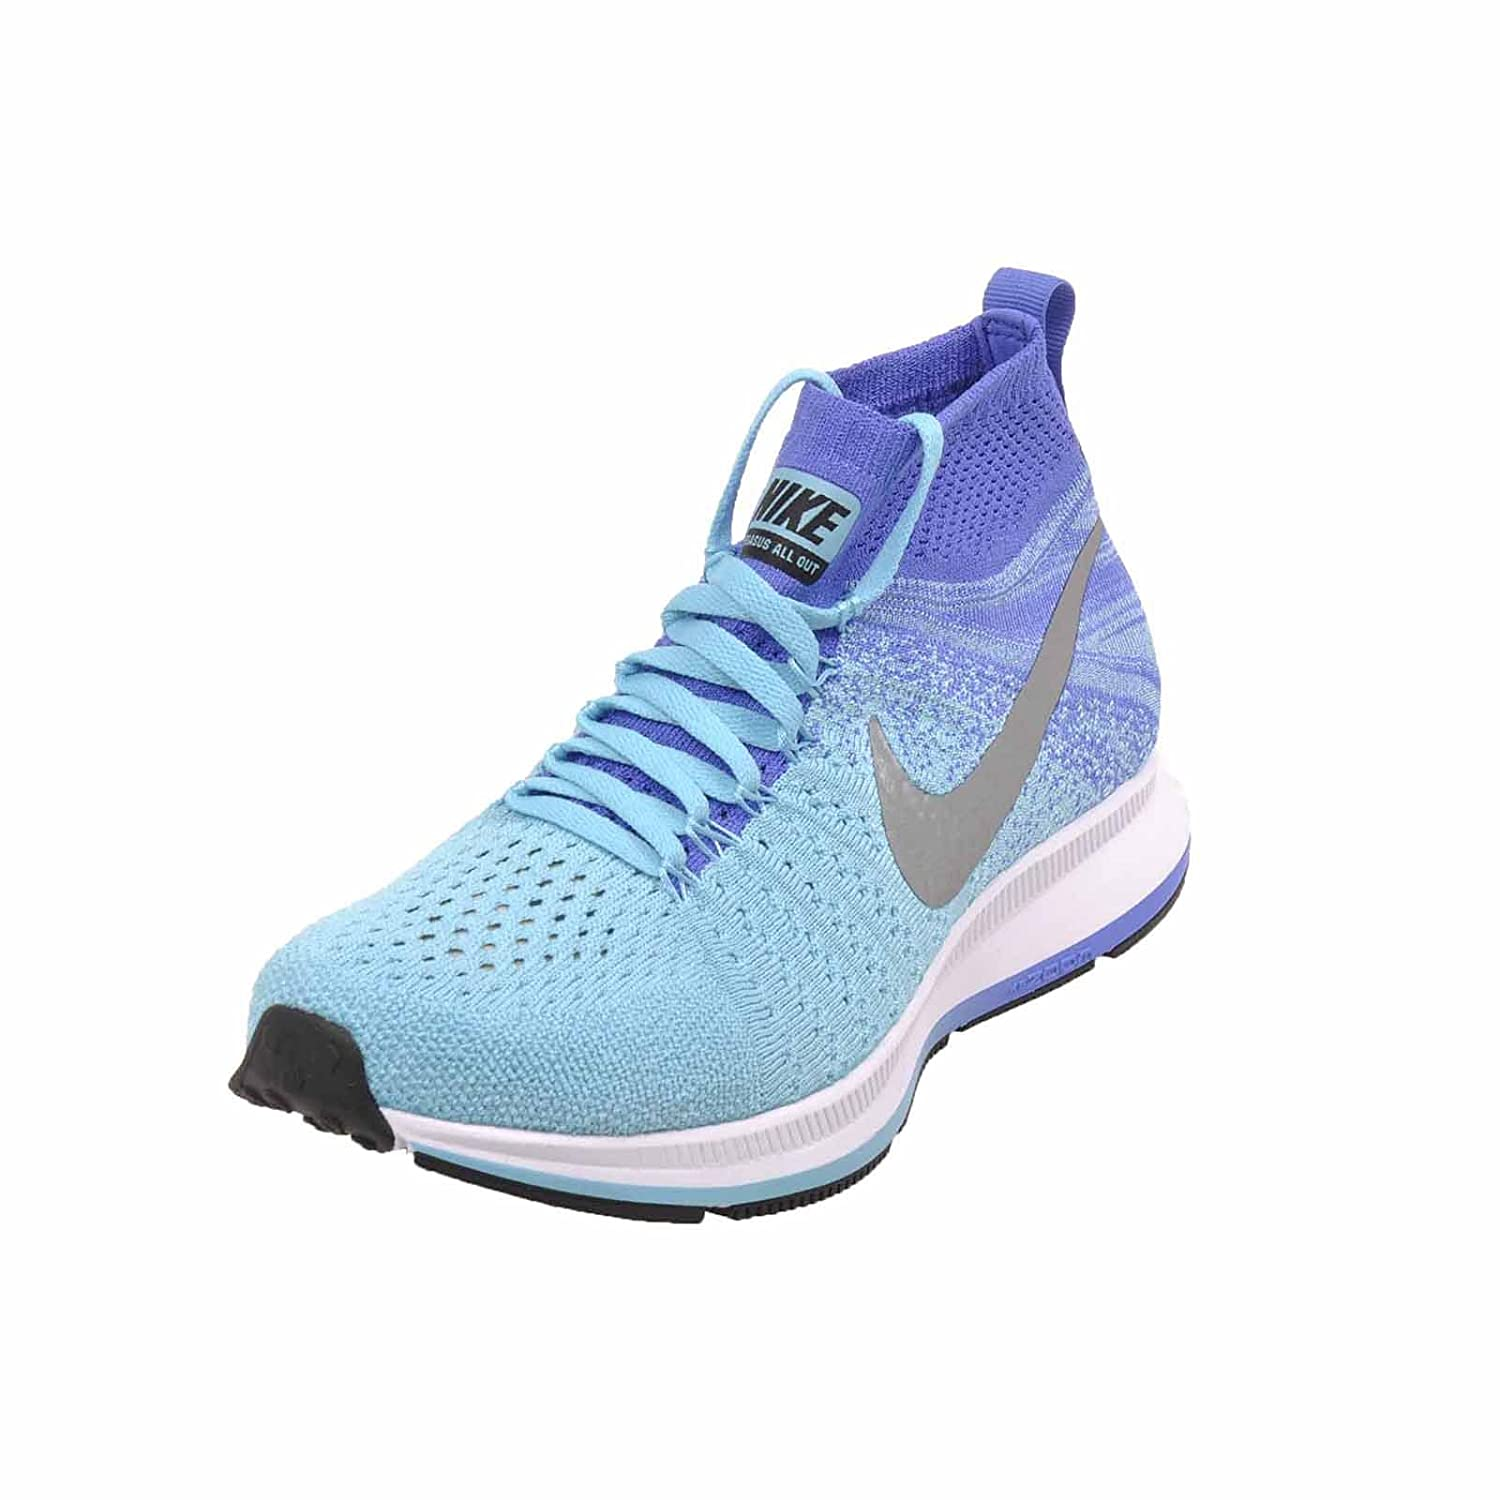 c5960bca289a Nike Zoom Pegasus All Out Flyknit Big Kids Running Shoe (5Y ...